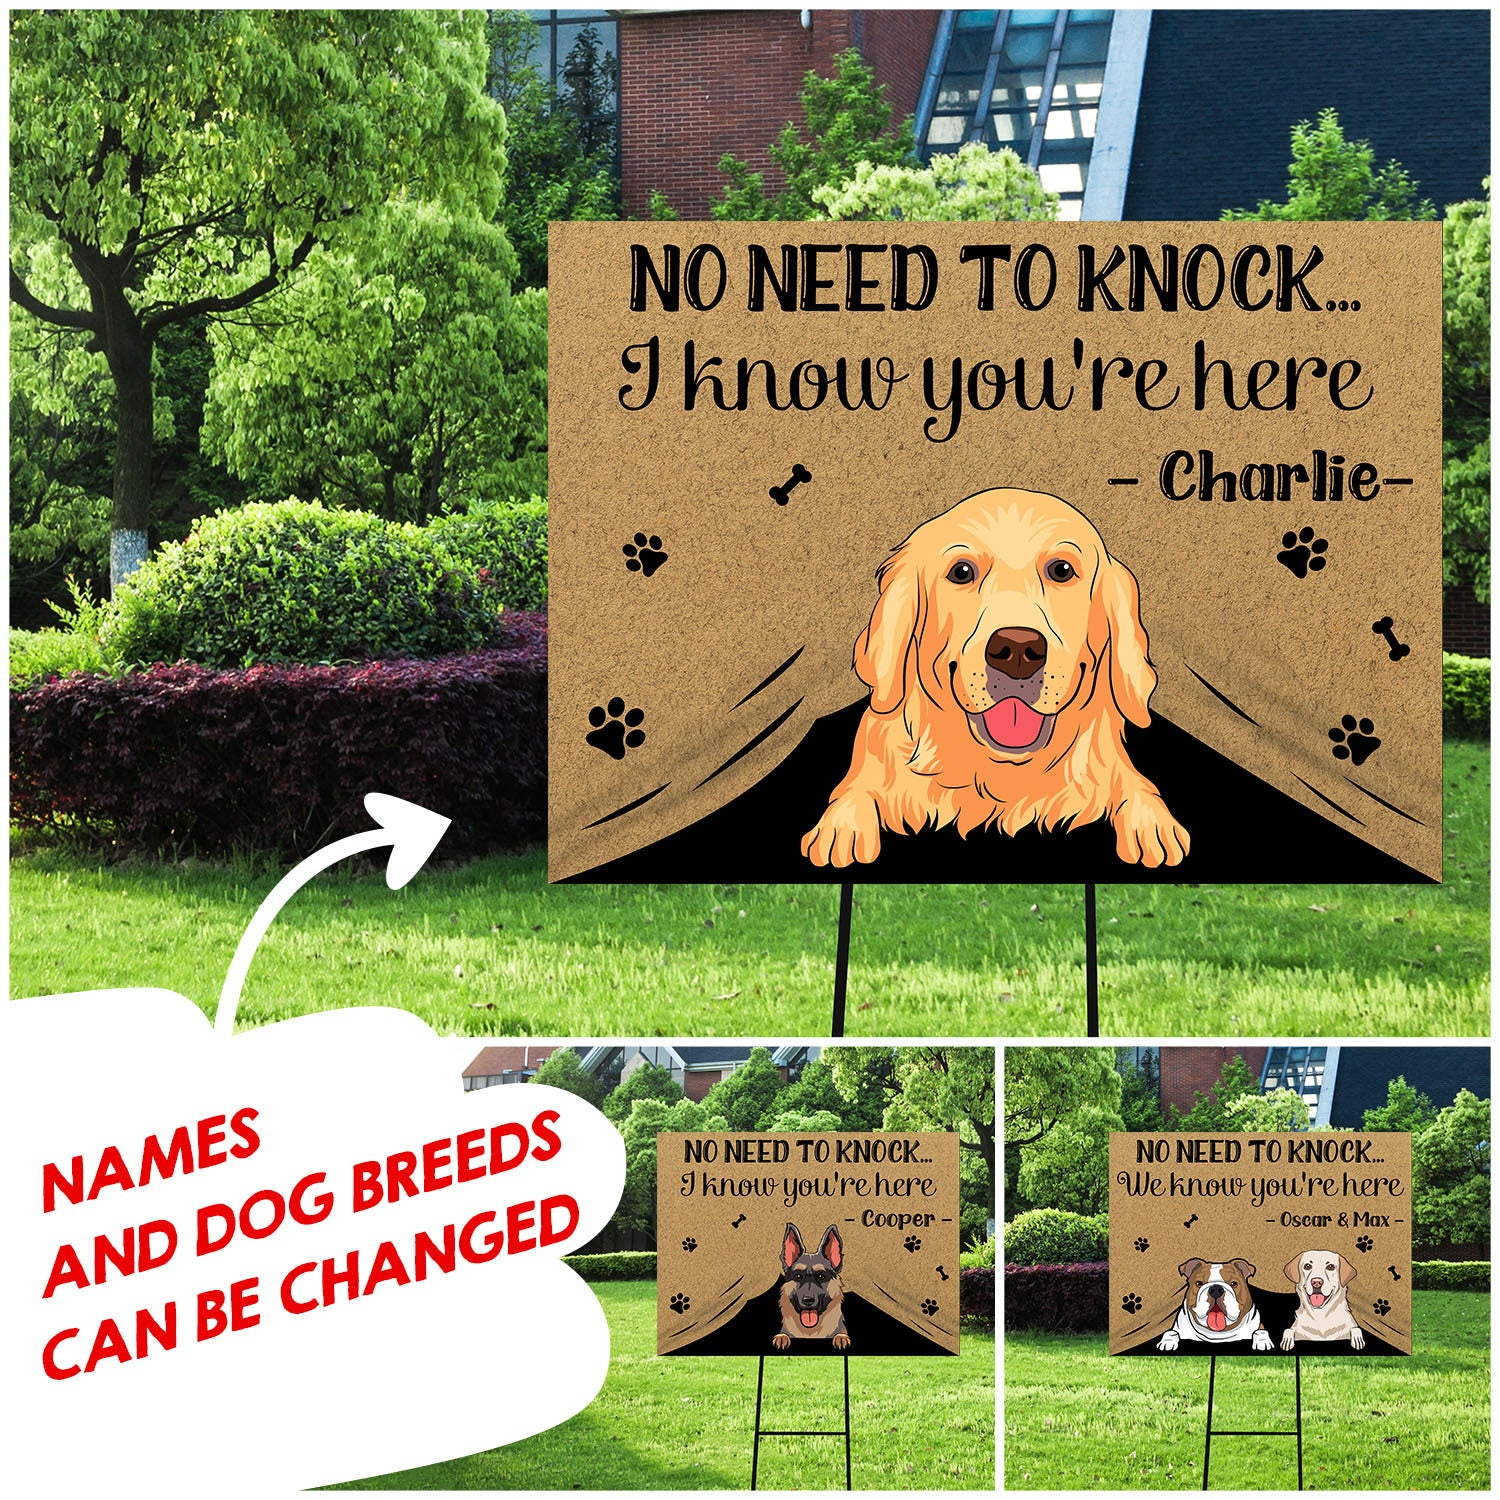 No need to knock - Personalized custom yard sign